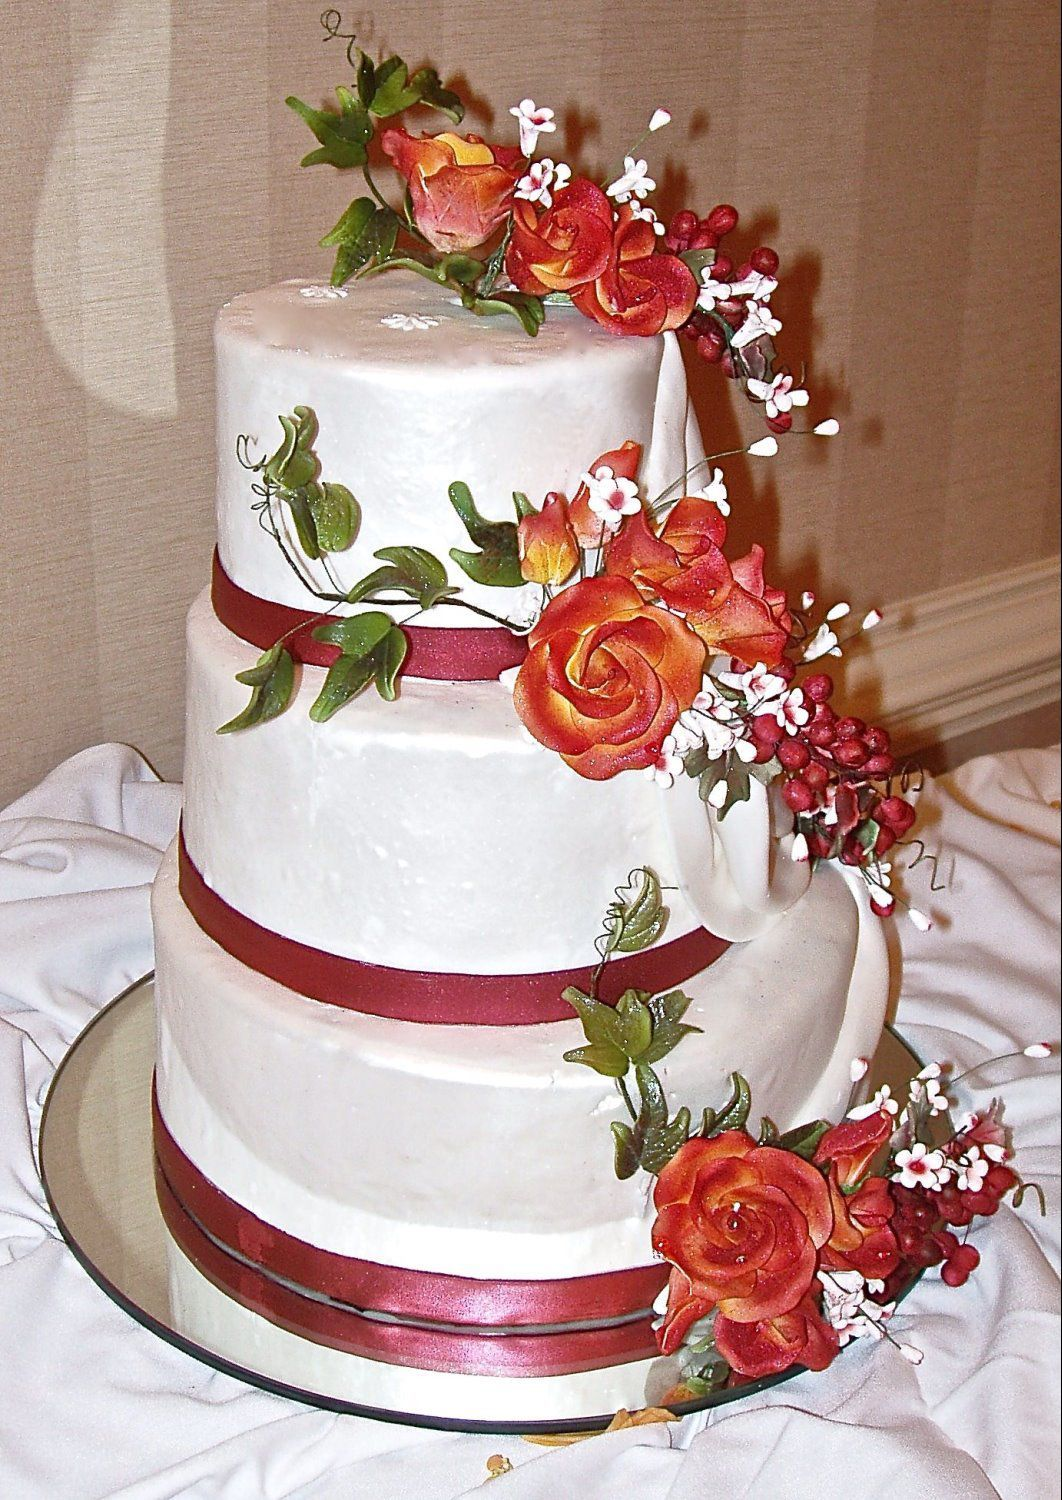 Cake Decorating Classes Nyc